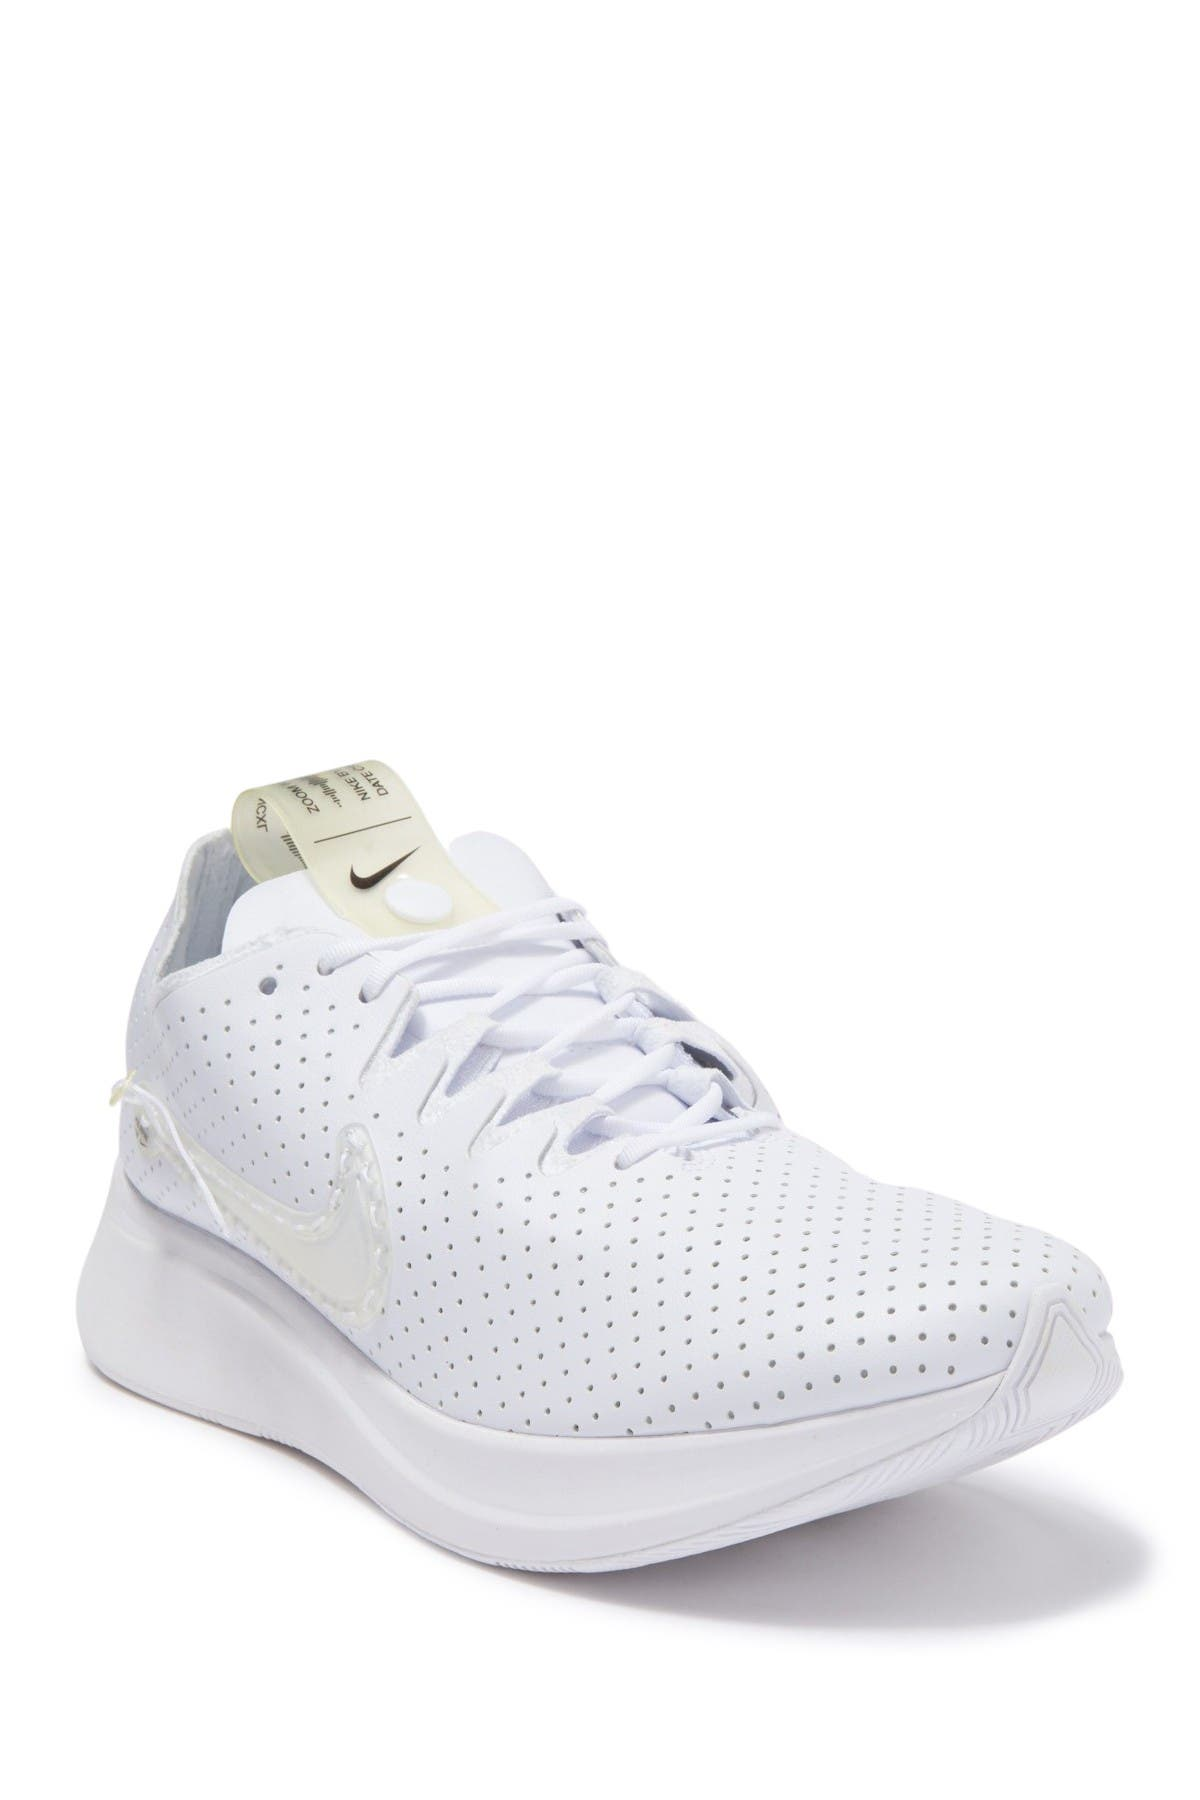 Roux Piñón Amado  Nike | Zoom Fly 2 Noise Cancelling Running Shoe | Nordstrom Rack